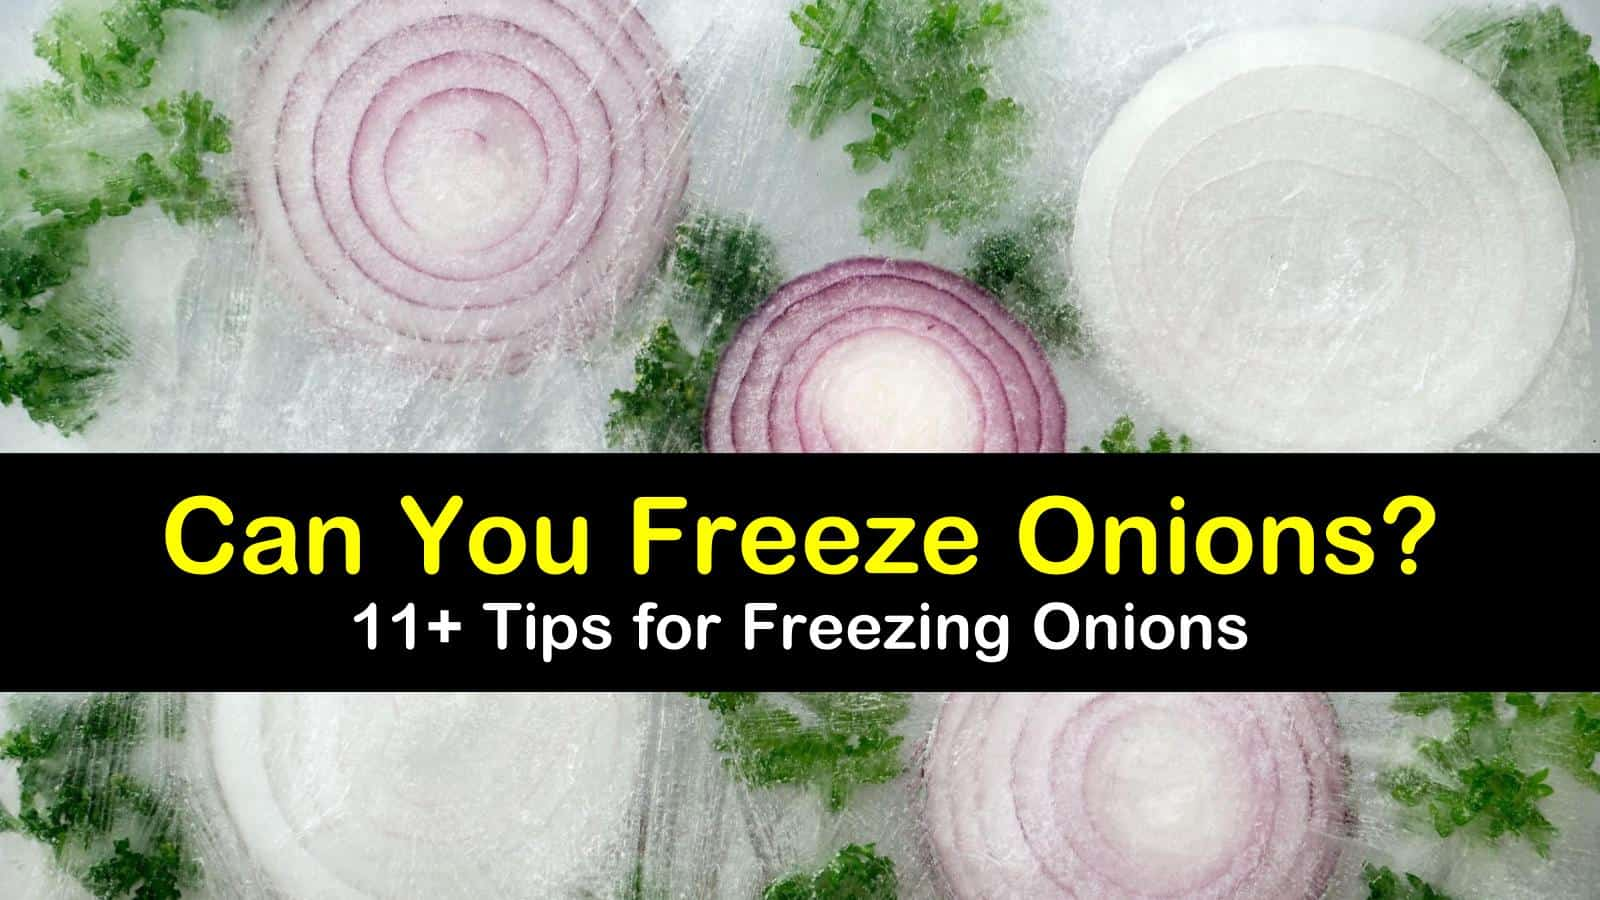 can you freeze onions titleimg1